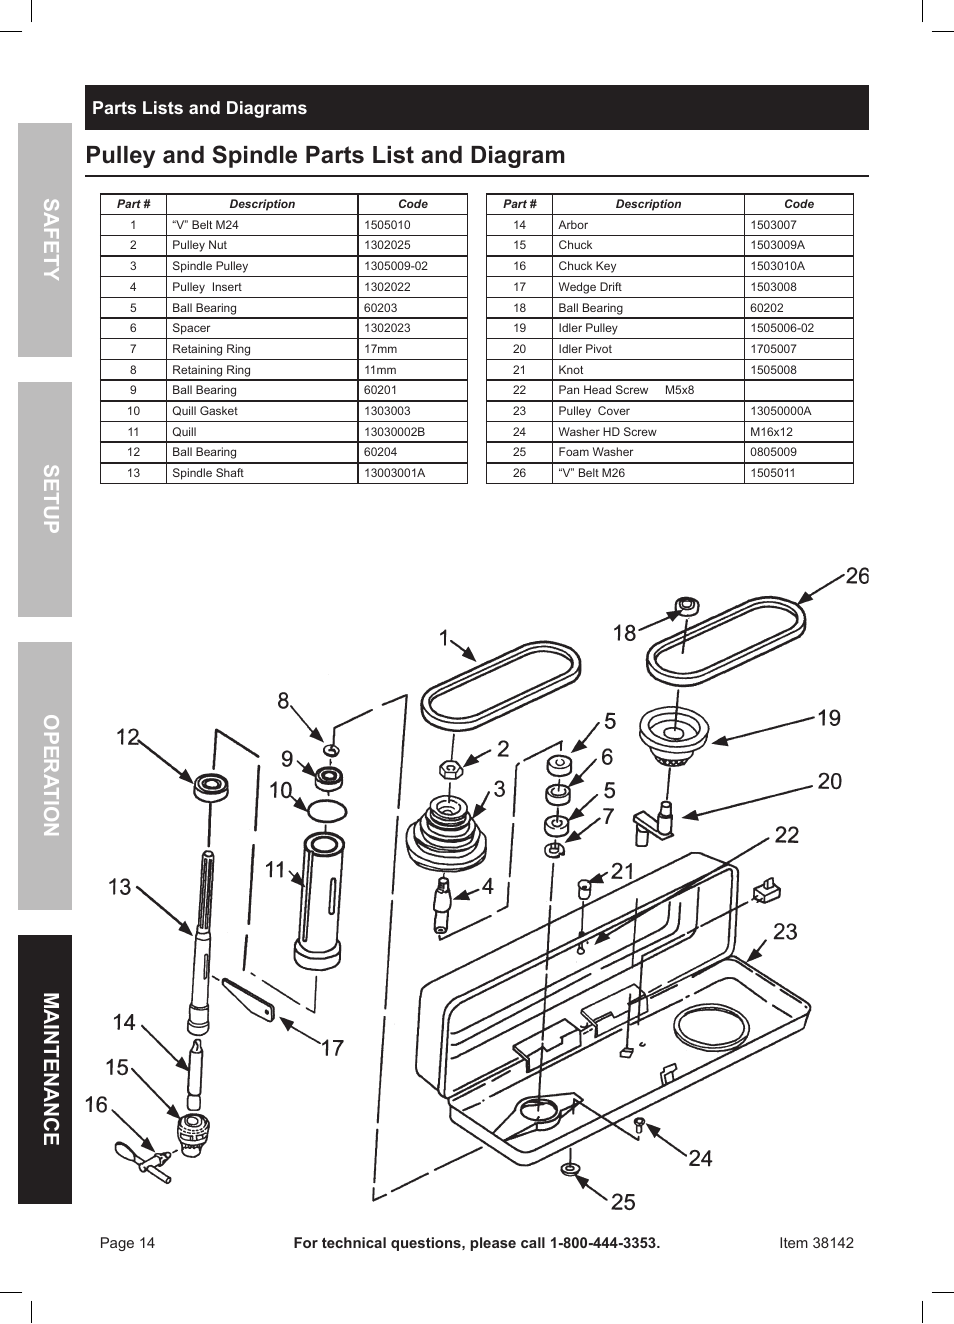 medium resolution of pulley and spindle parts list and diagram safety opera tion maintenance setup parts lists and diagrams harbor freight tools central machinery 13 bench